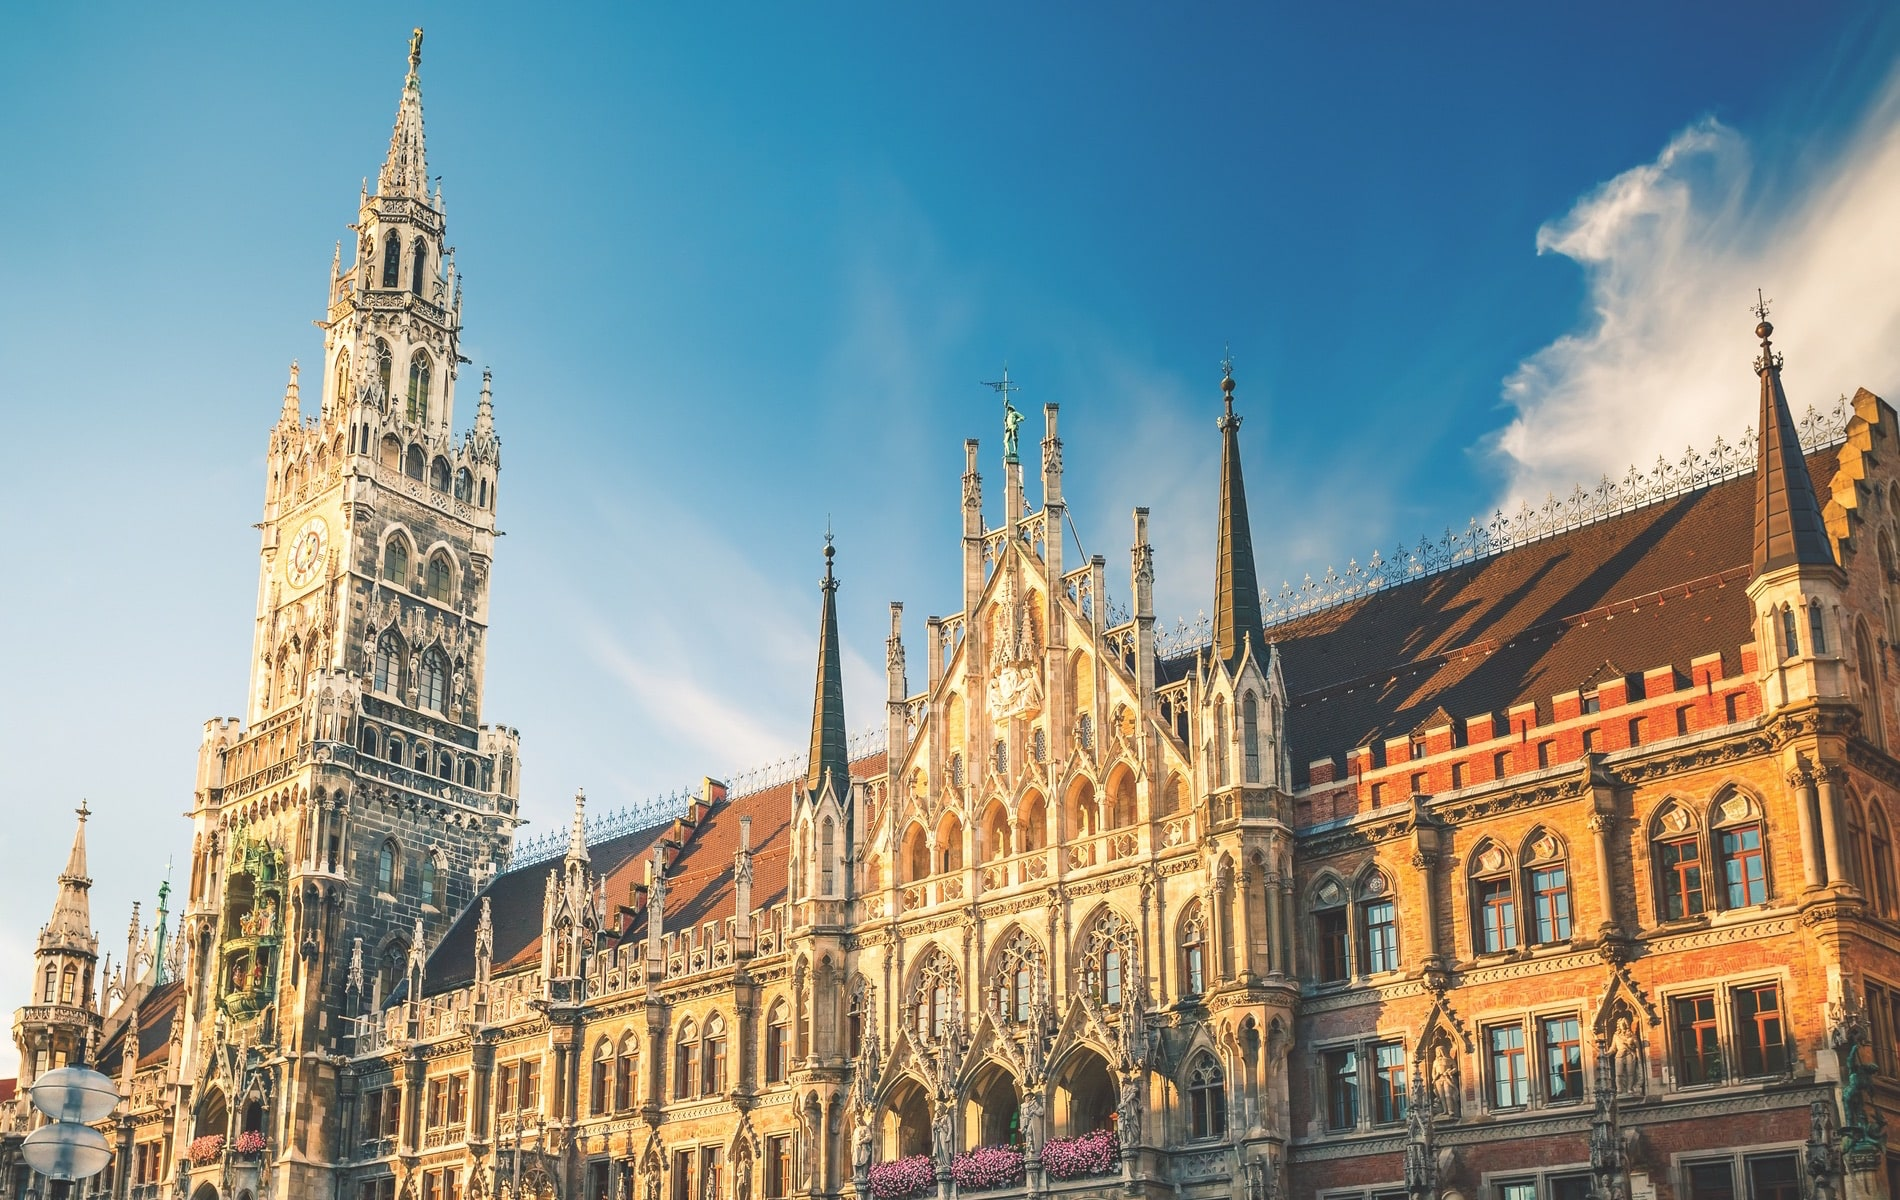 Munich's New Town Hall located in the famous Marienplatz square